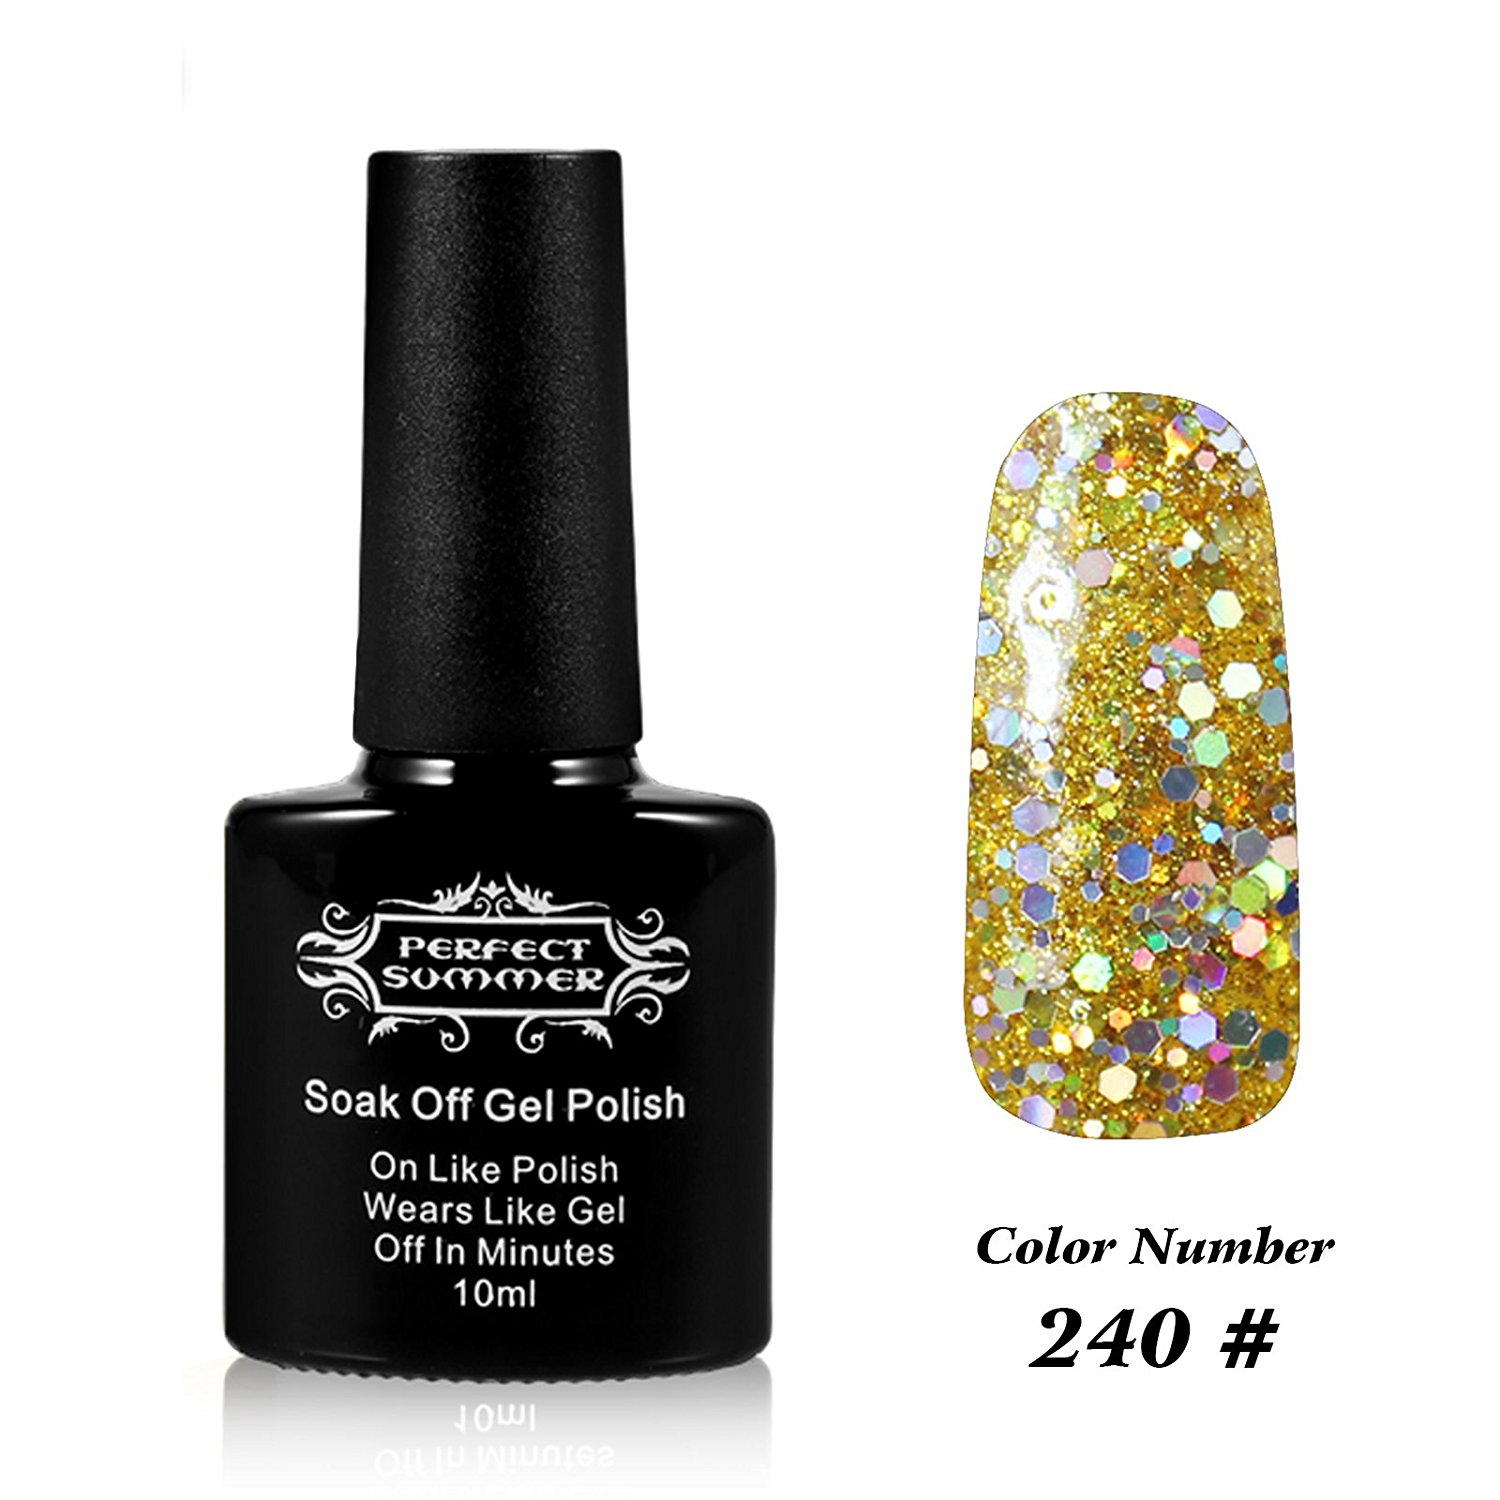 Perfect Summer Salon Nails Art Decoration Gift 10ml Gel Nails Polish UV Led Light Soak Off Creative French Manicure Nails Lacquers for Girls #240 glitter gold